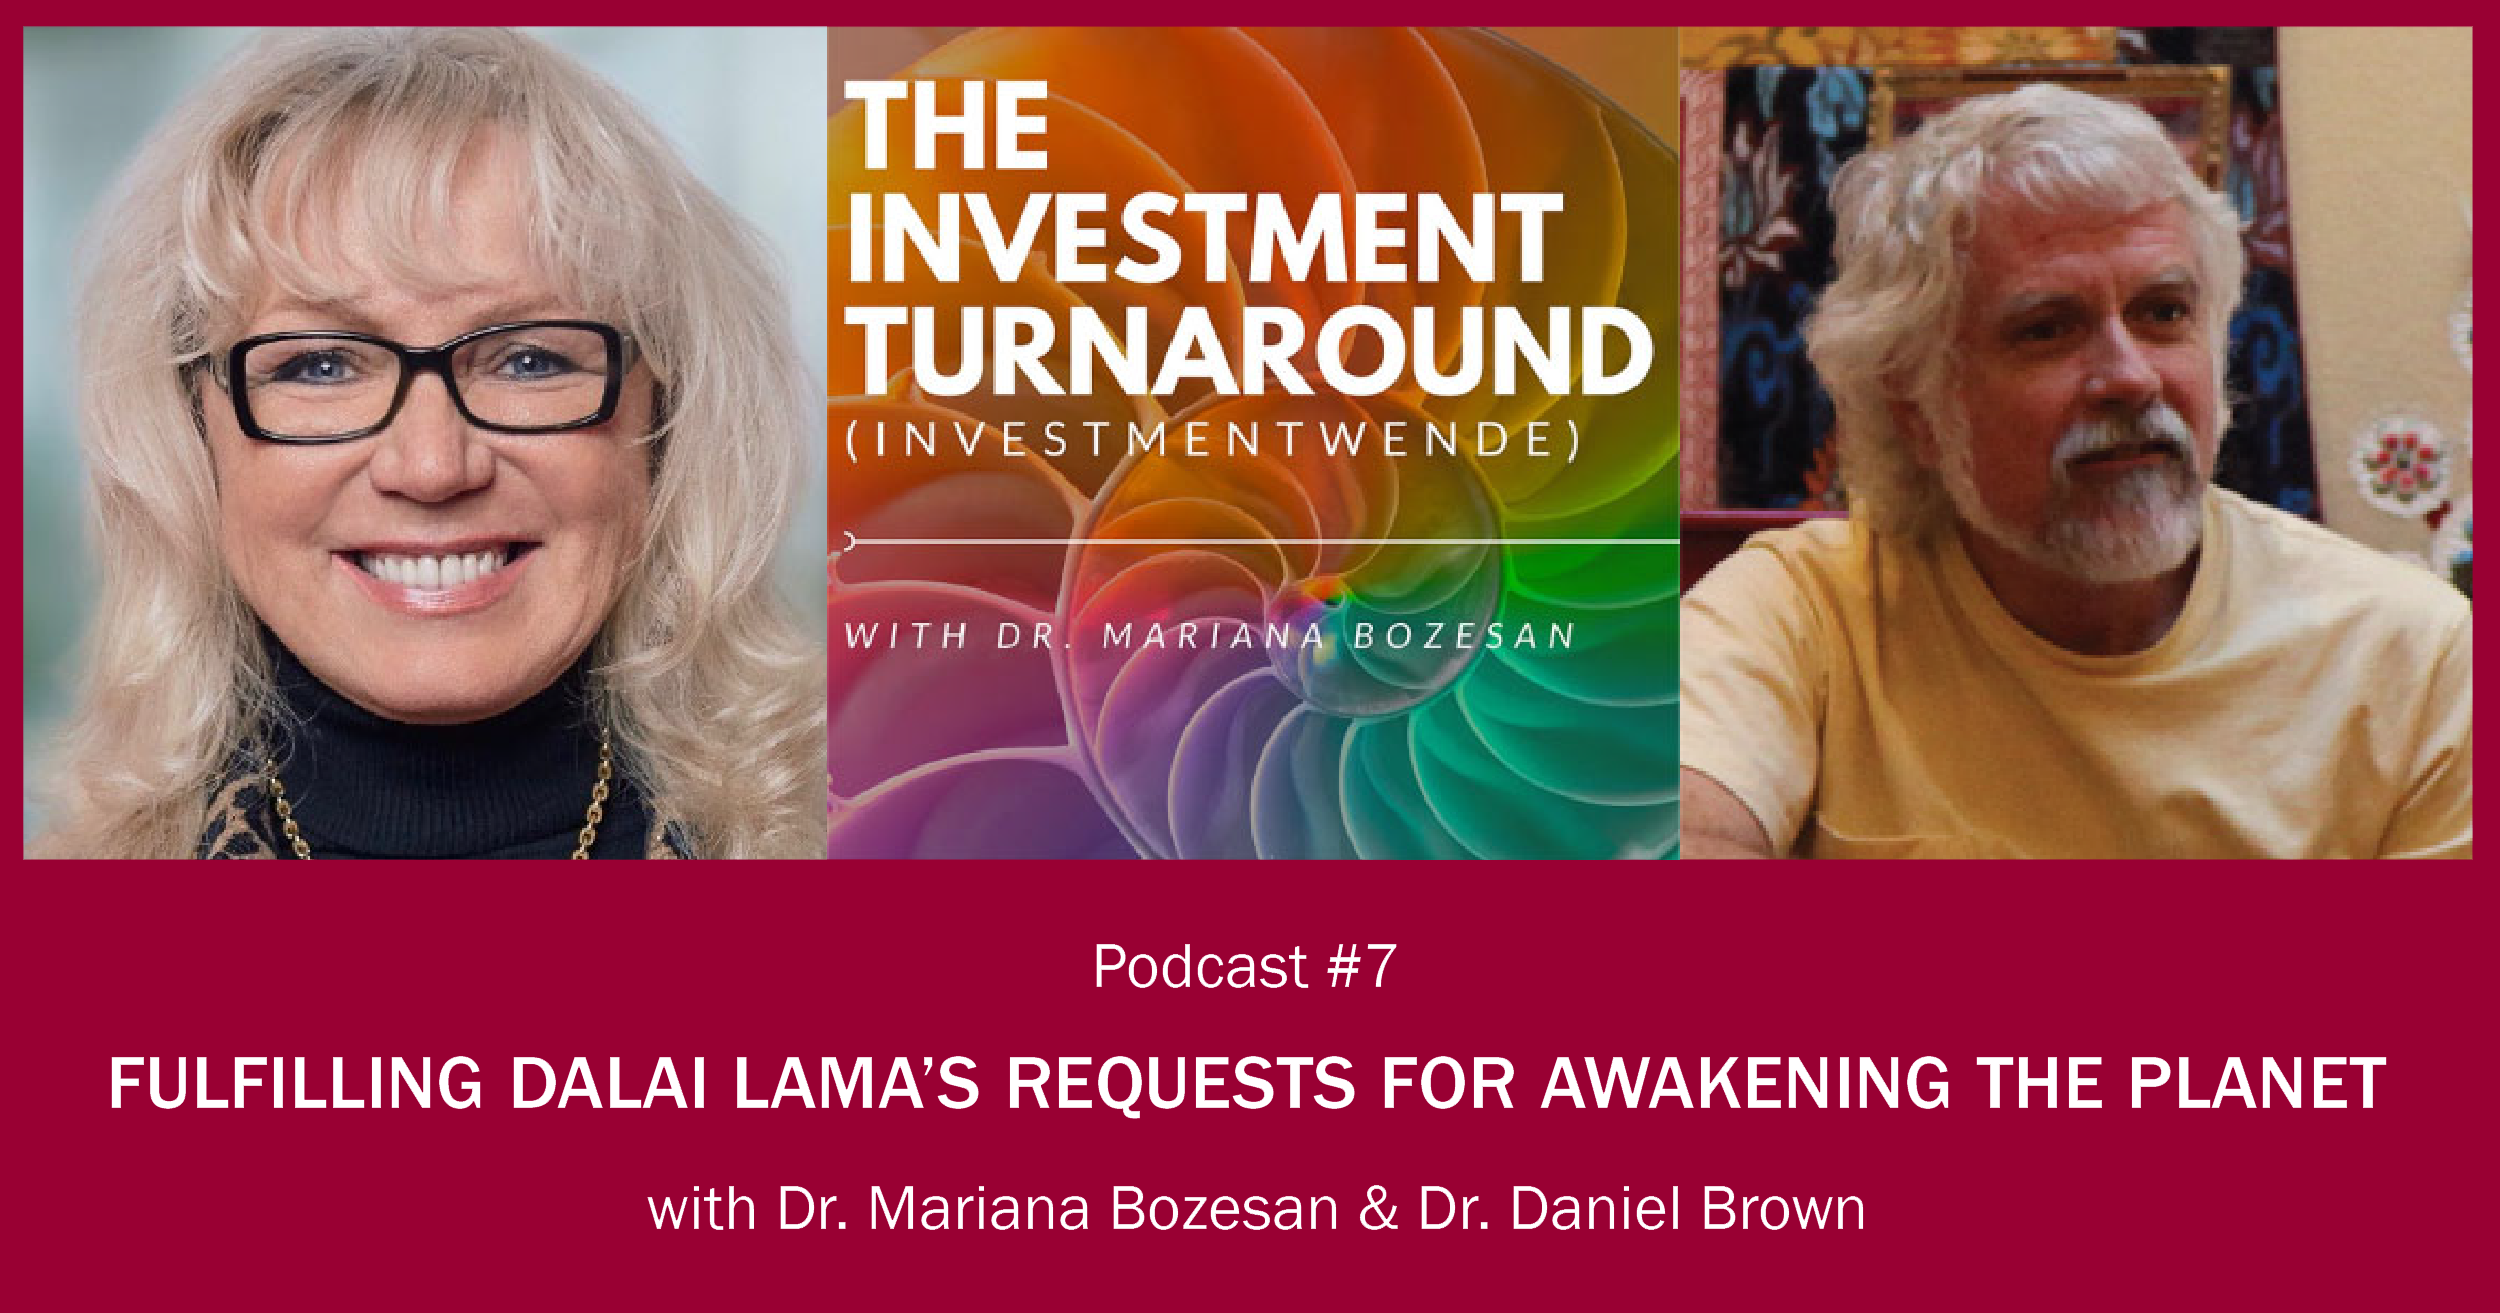 Fulfilling Dalai Lama's Requests for Awakening the Planet